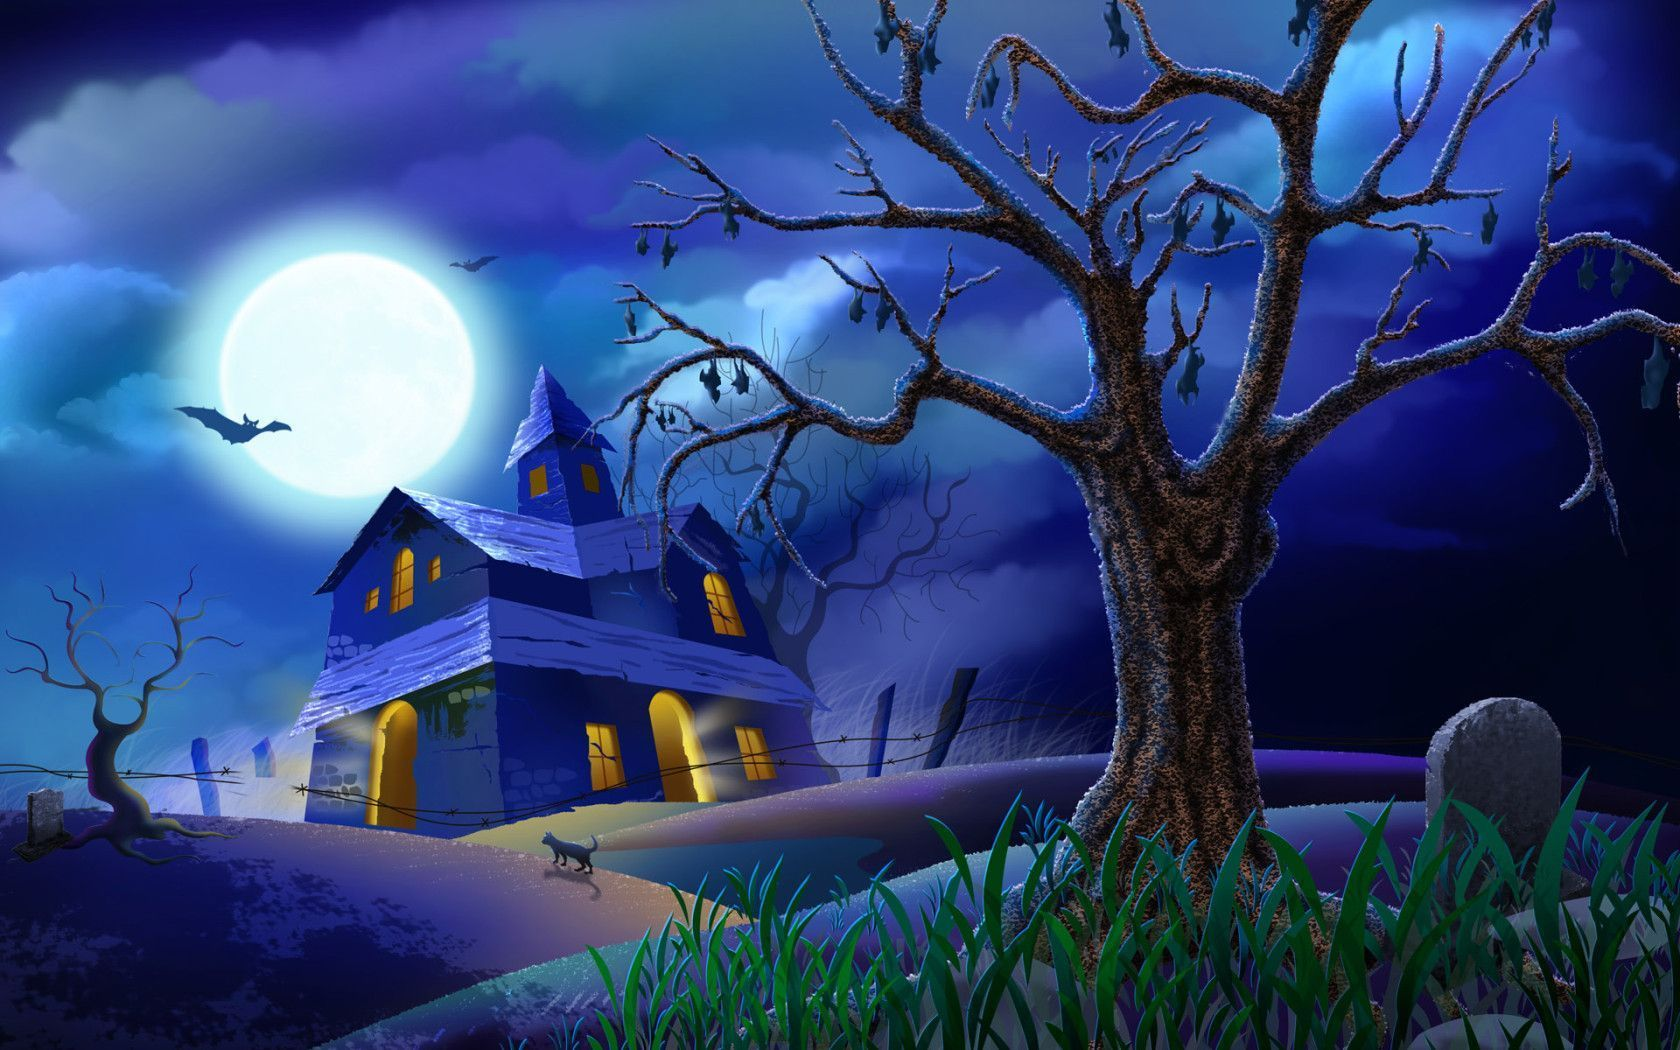 halloween live wallpaper free android apps on google play 16801050 live halloween wallpapers 15 wallpapers adorable wallpapers